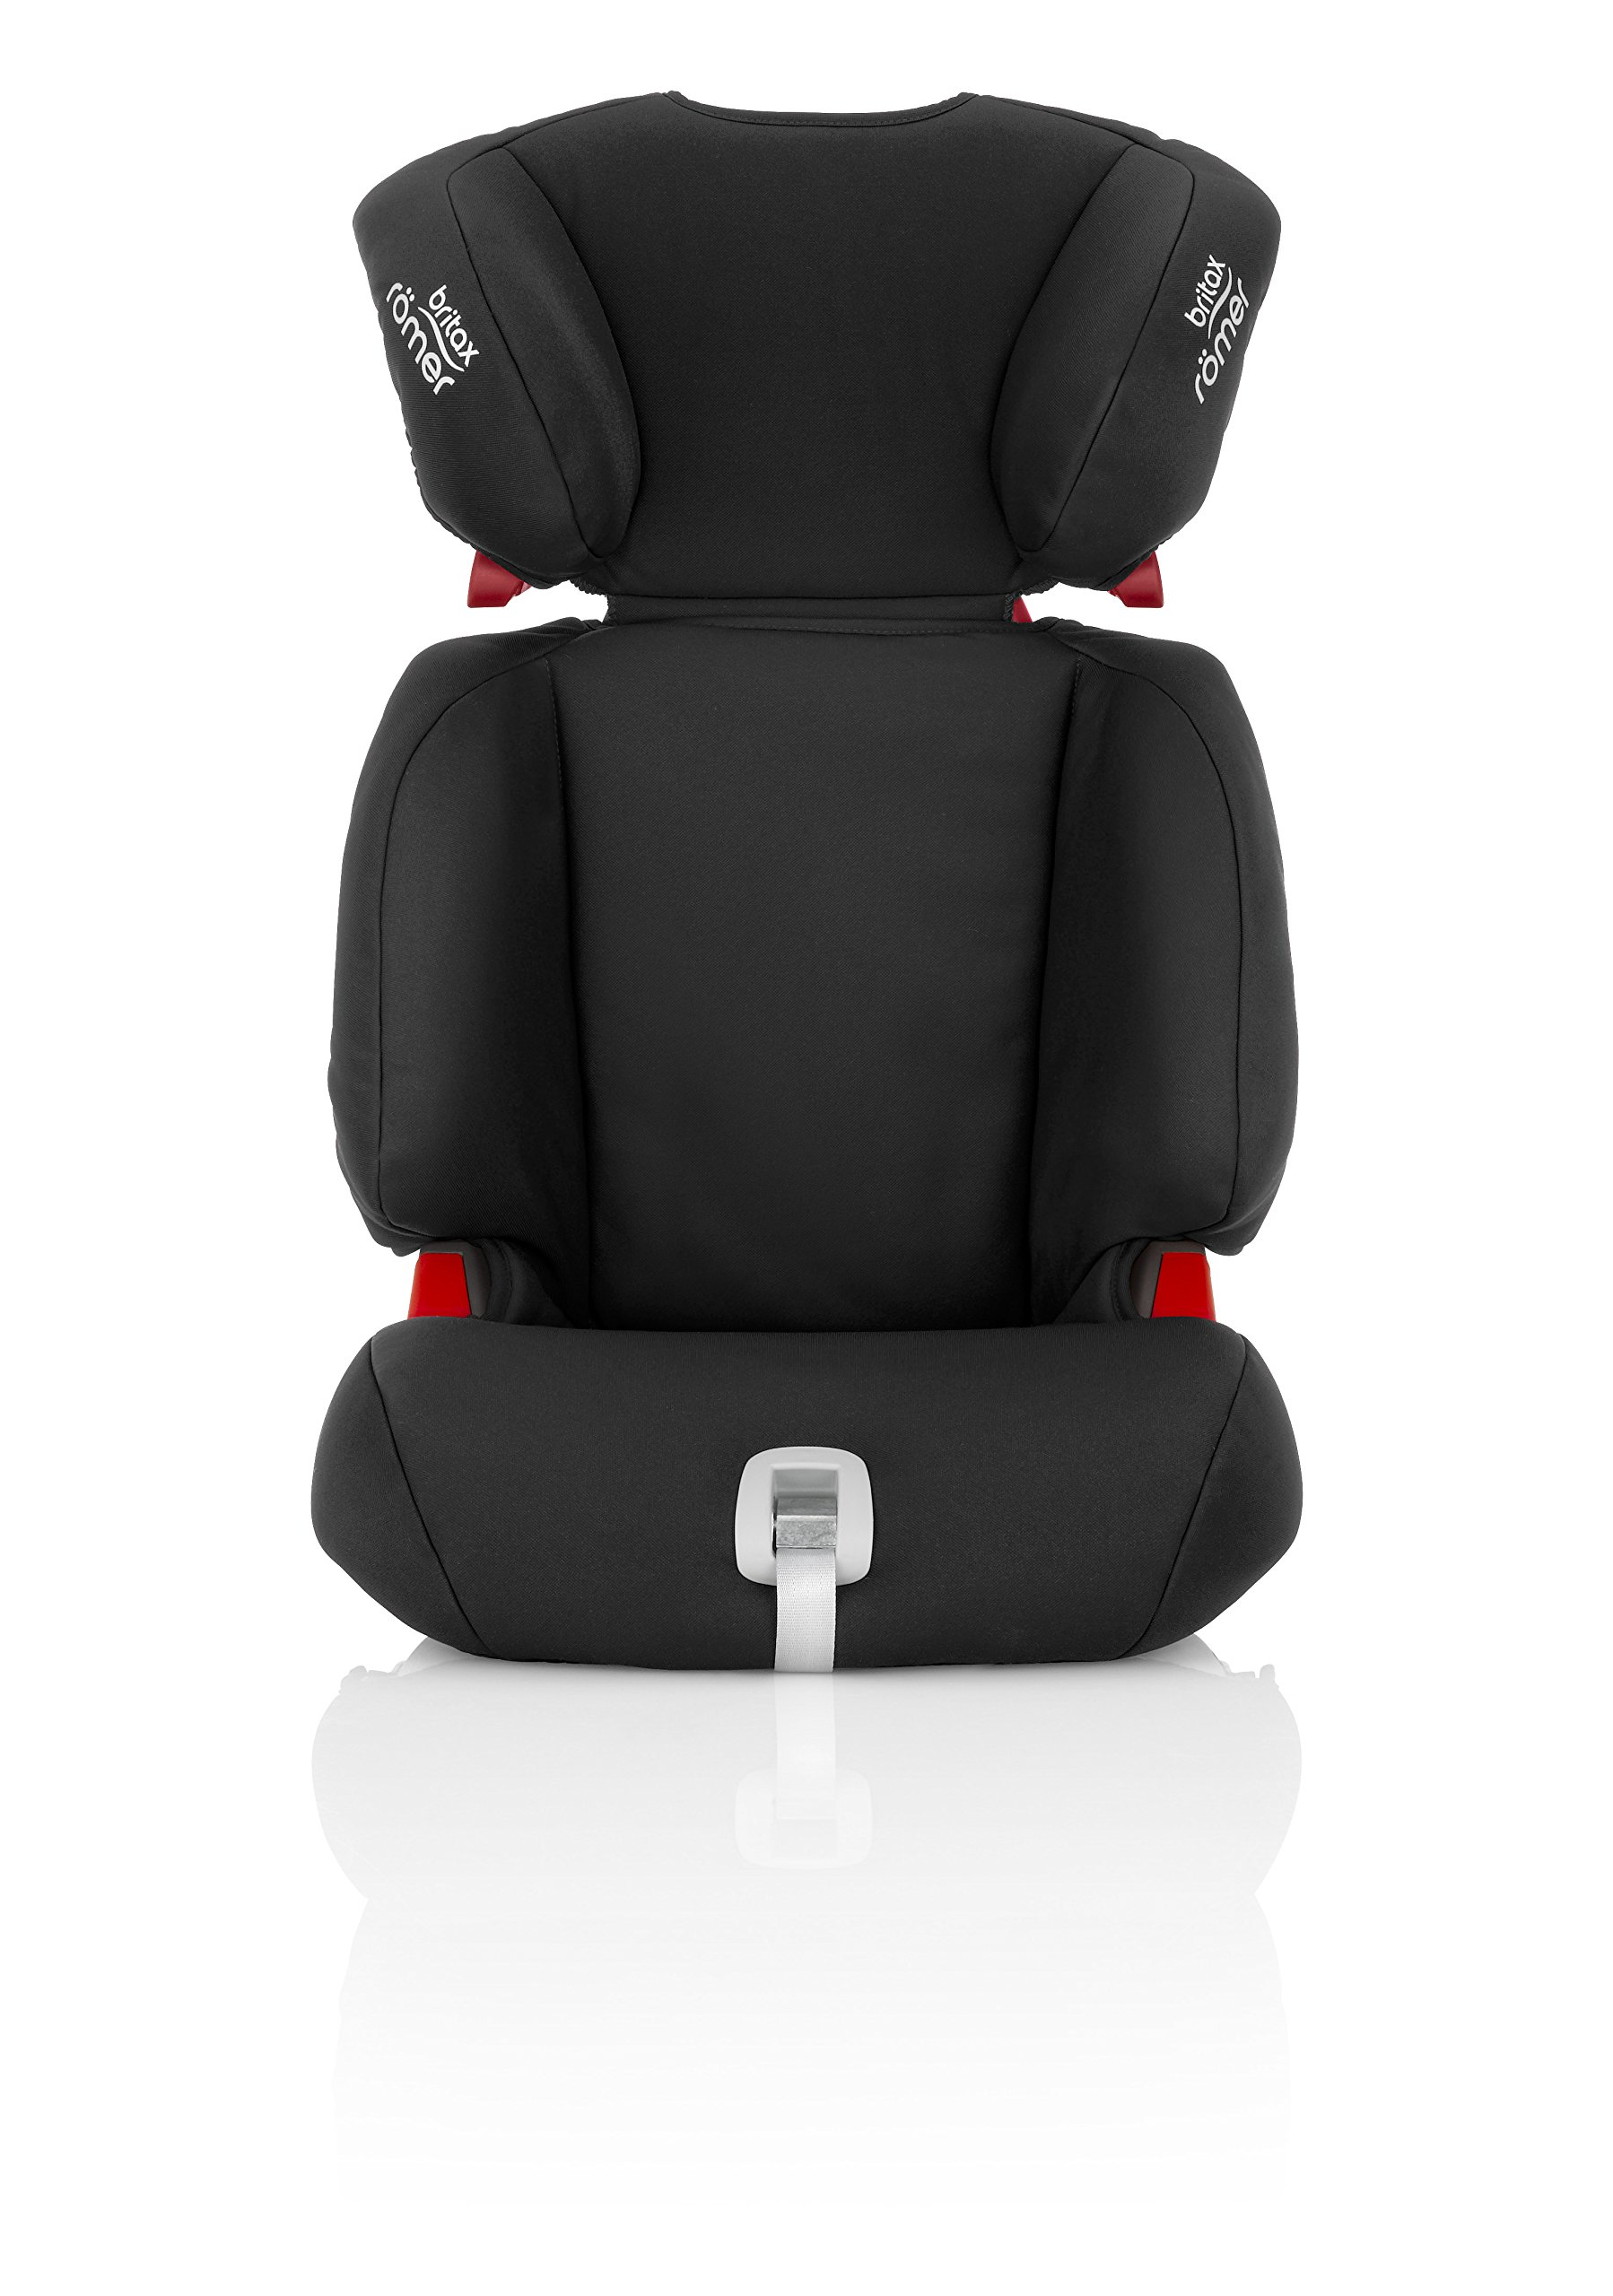 Britax Römer DISCOVERY SL Group 2-3 (15-36kg) Car Seat - Cosmos Black Britax The DISCOVERY SL is an award-winning highback booster seat with flexible installation options to suit any car - with optional attachment to the car's ISOFIX anchorage points. All in a lightweight shell for easy transfer between cars Highback booster protection - this highback booster will protect your child in 3 ways: the seat shell provides head to hip protection; the upper and lower belt guides provide correct positioning of the seat belt; and the padded headrest provides safety and comfort Adjustable backrest - the child seat's adjustable backrest allows you to match the angle of the vehicle seat, providing a better fit and a comfortable position for your child 4